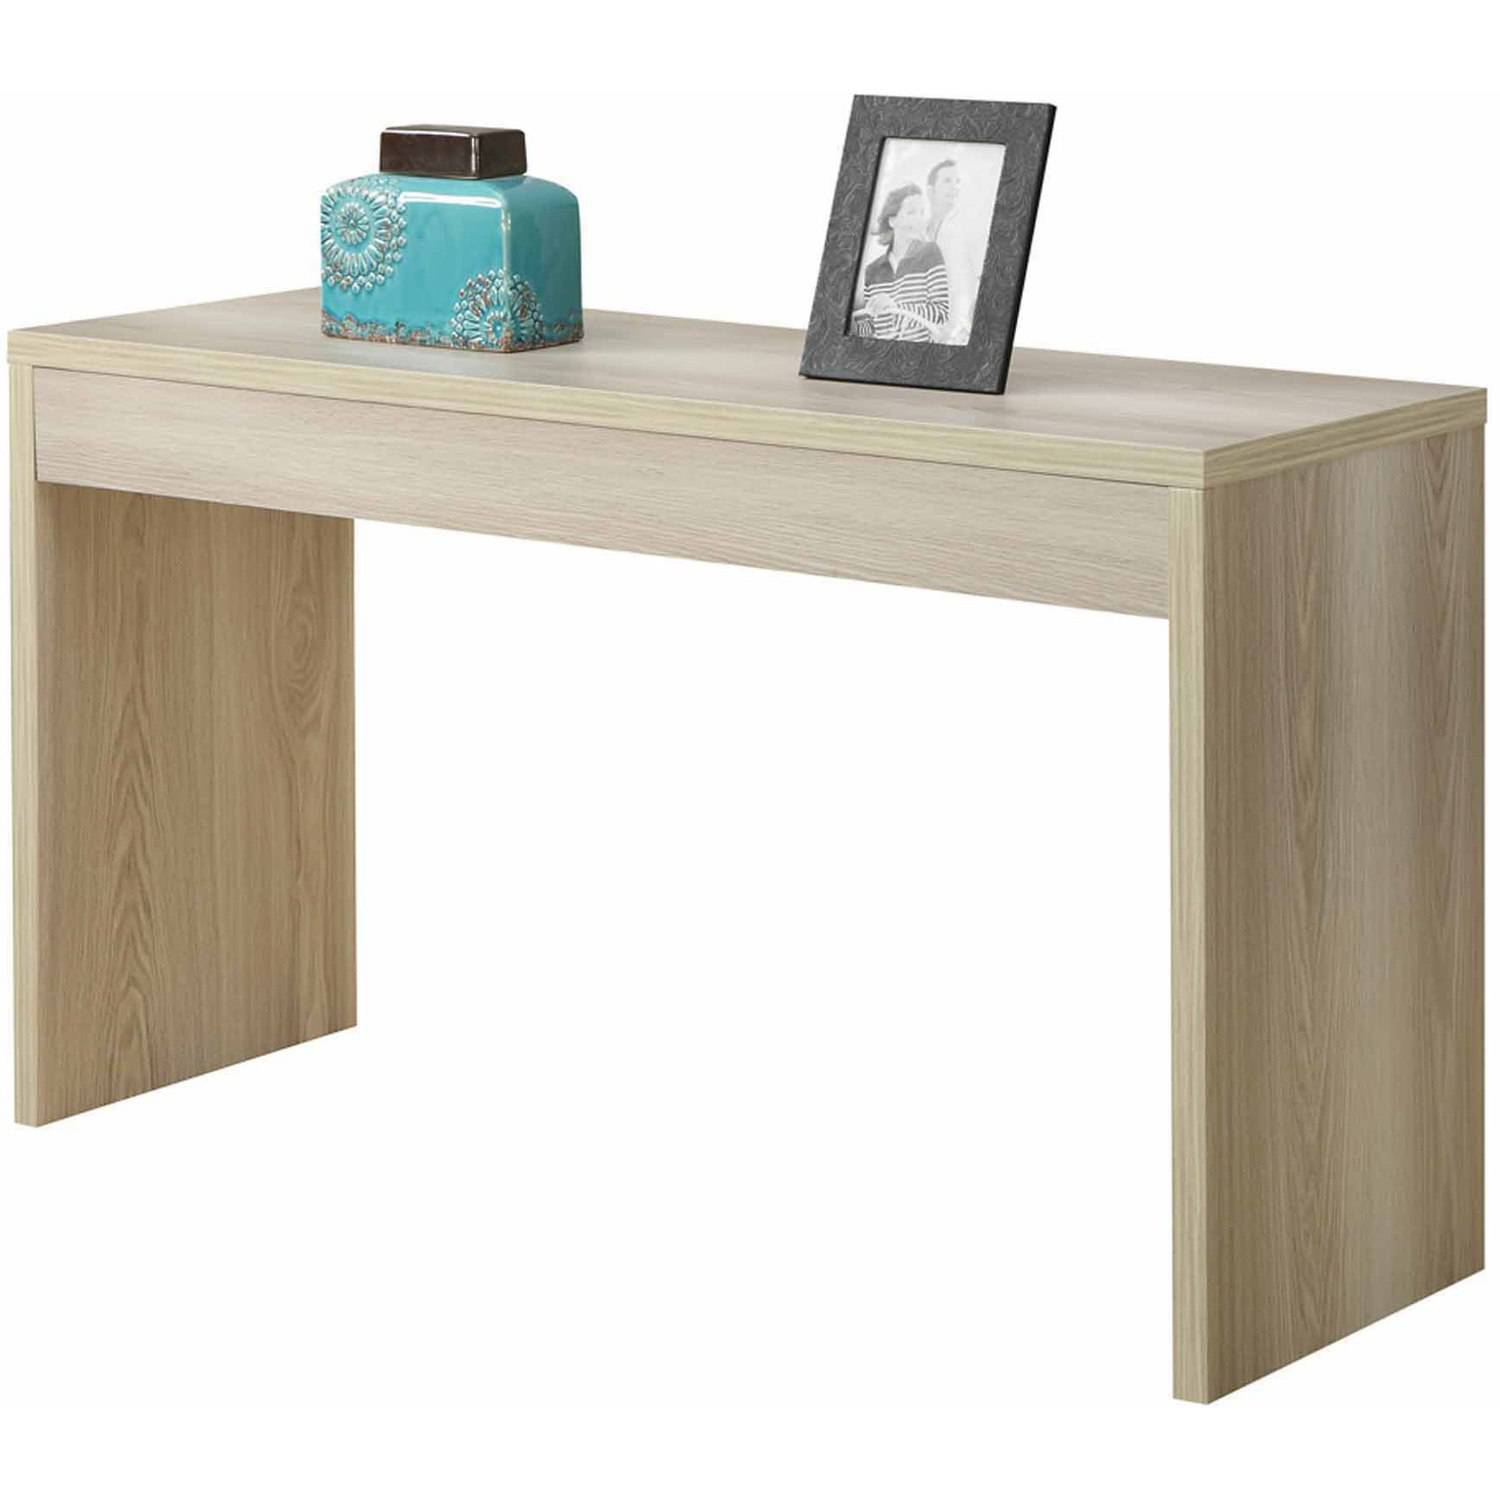 Convenience concepts northfield hallway console table mutilple convenience concepts northfield hallway console table mutilple colors walmart geotapseo Image collections